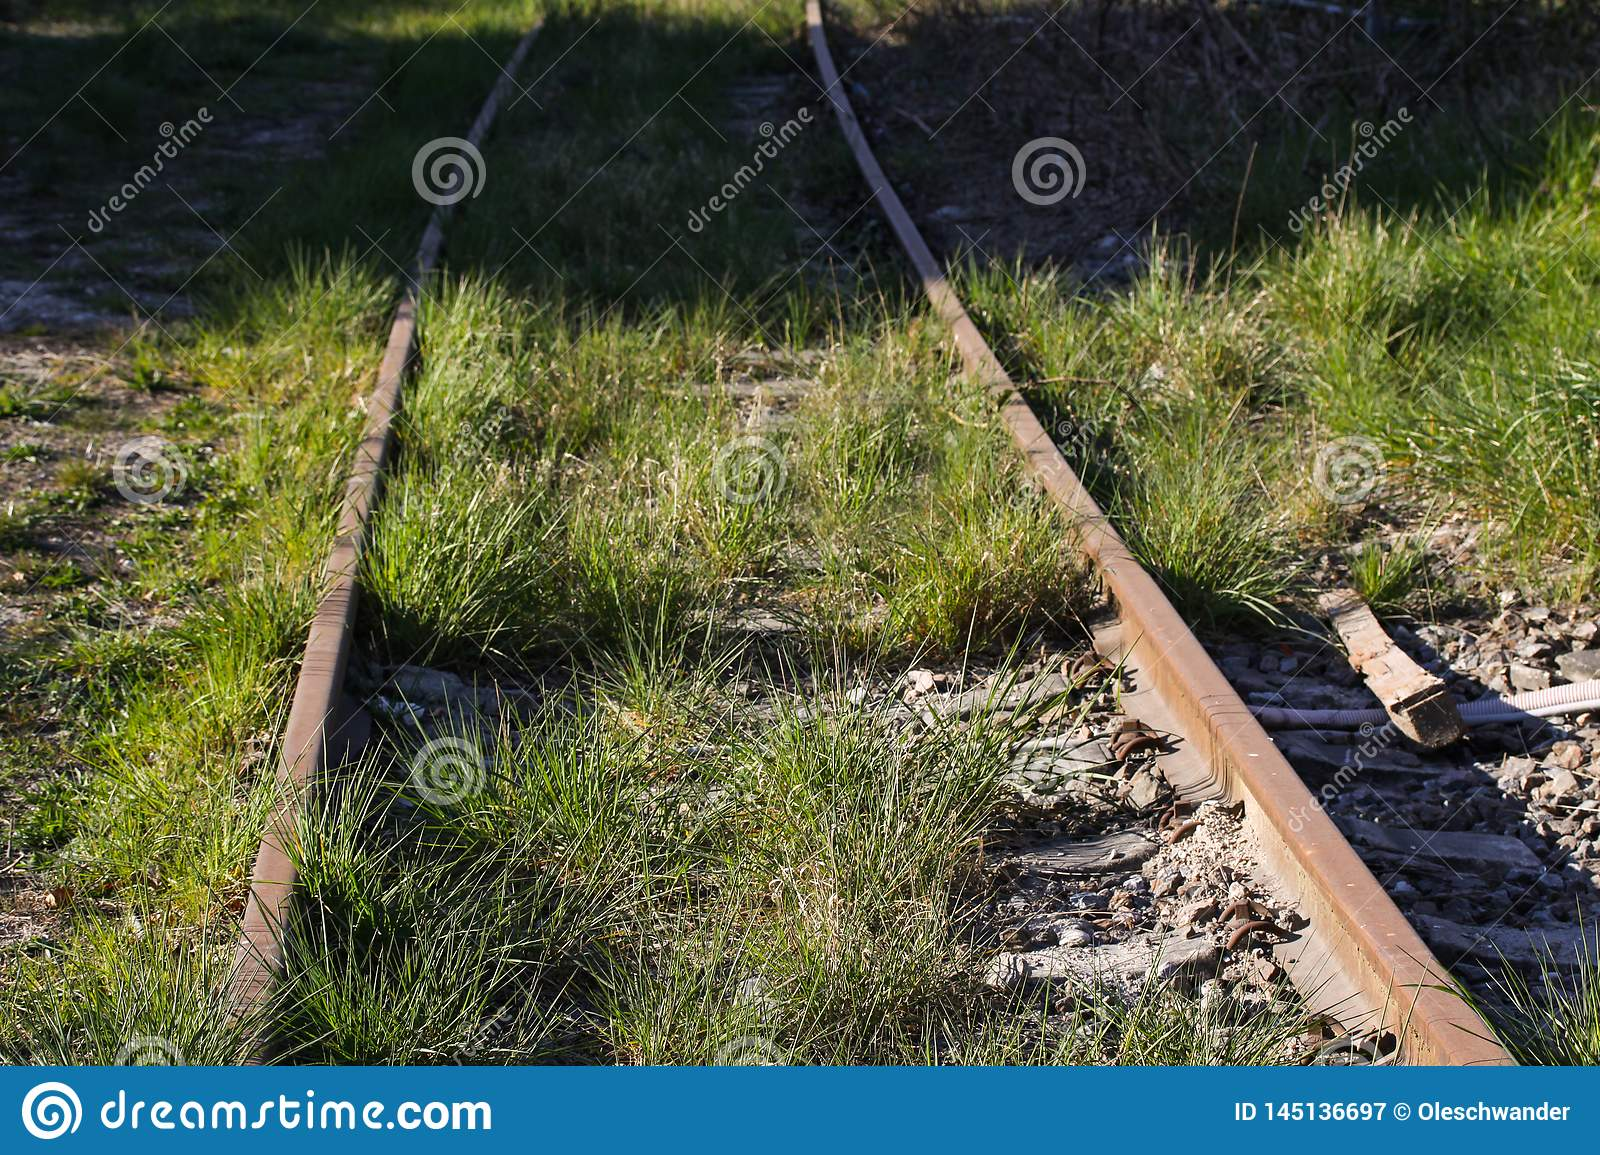 Abandoned railroad tracks with green grass and weed